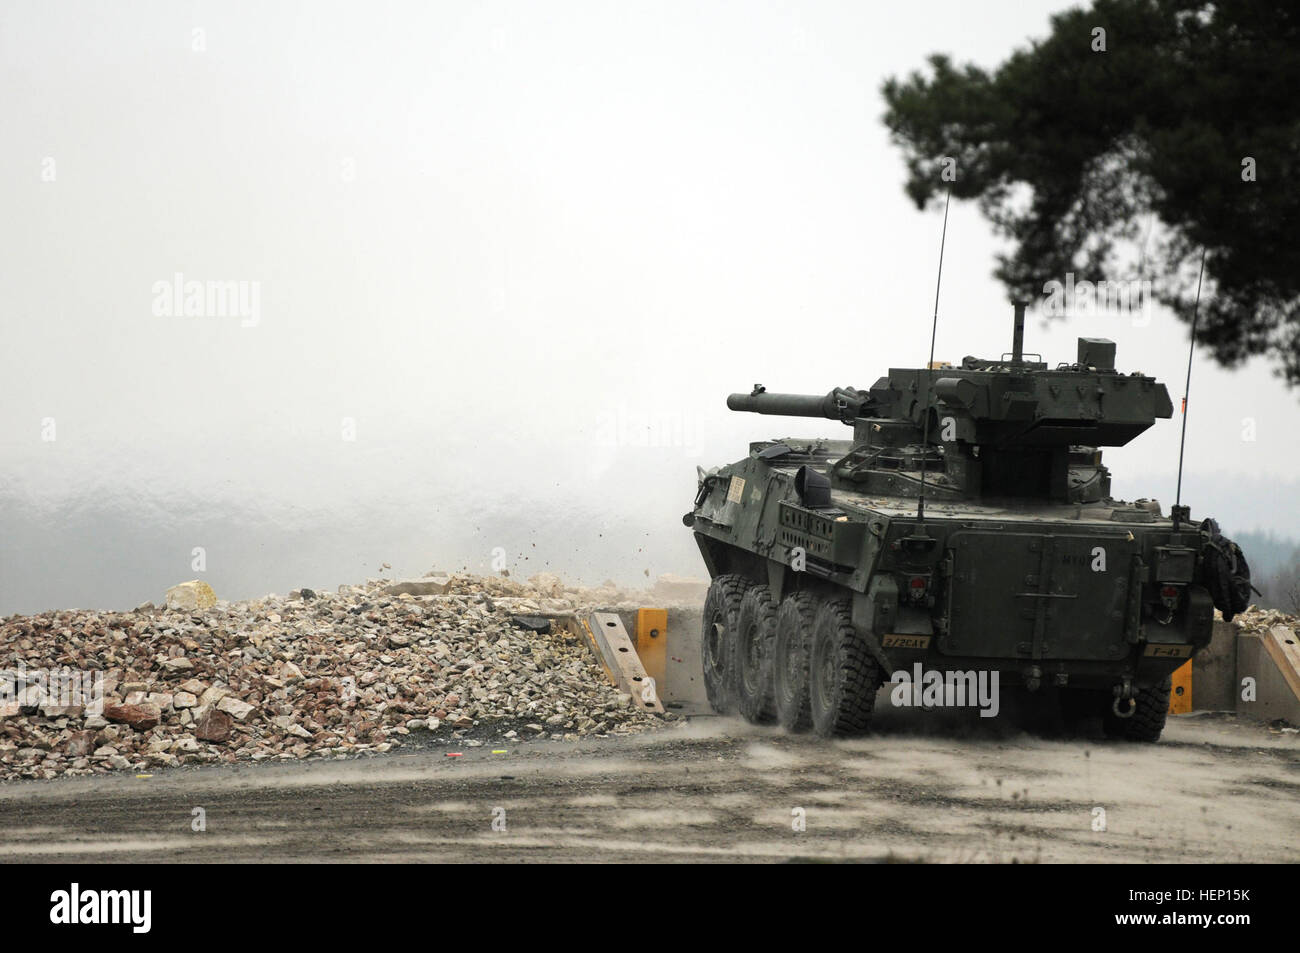 A m1128 stryker mobile gun system assigned to unit fires a 105mm round downrage